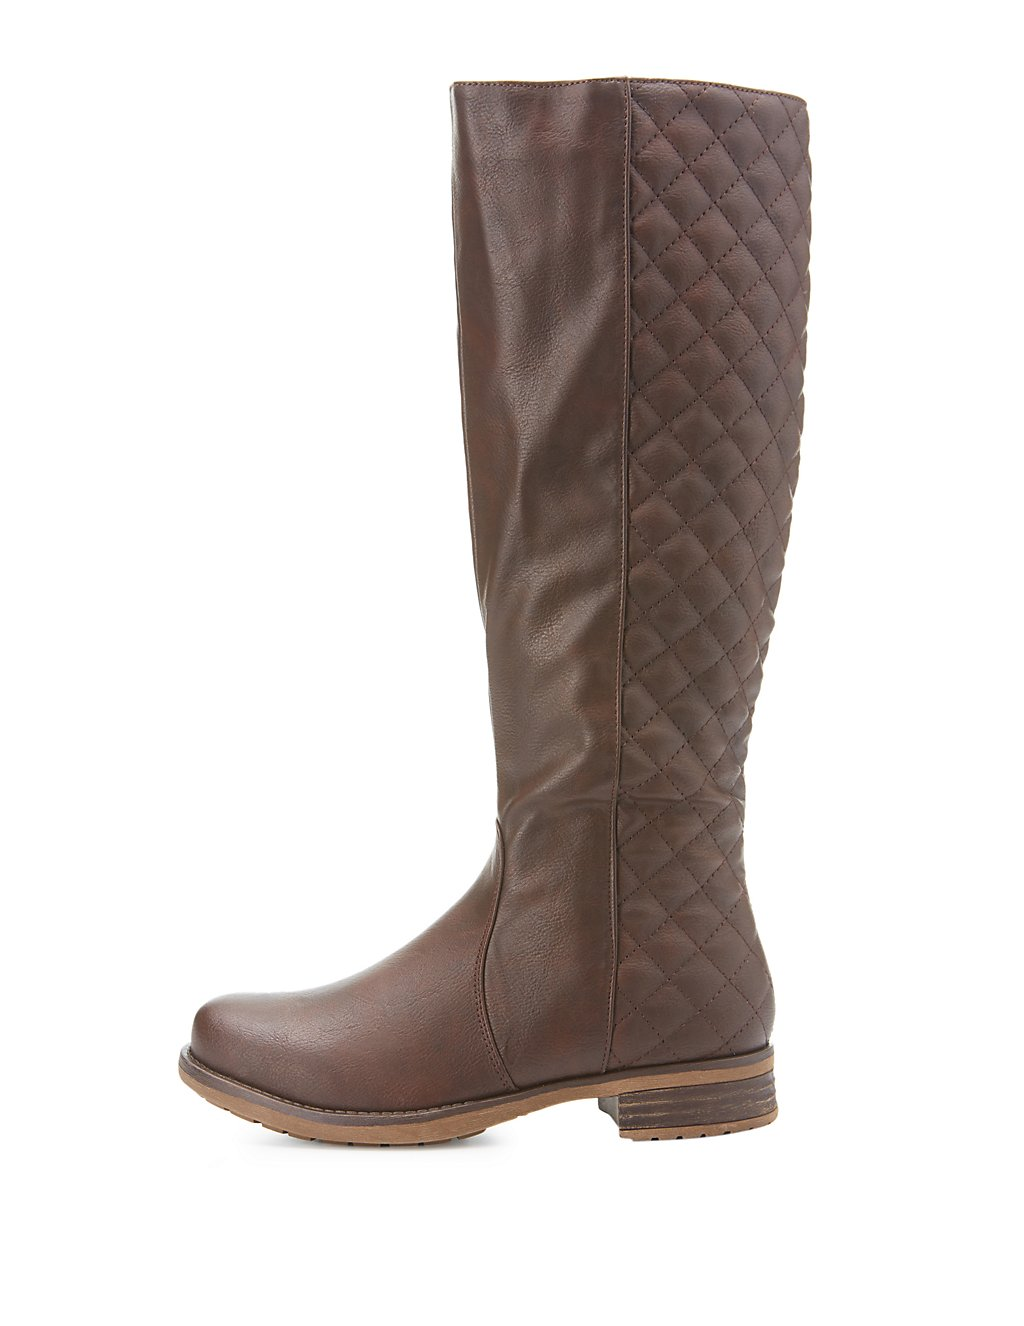 Quilted Knee-High Riding Boots   Charlotte Russe : quilted brown boots - Adamdwight.com